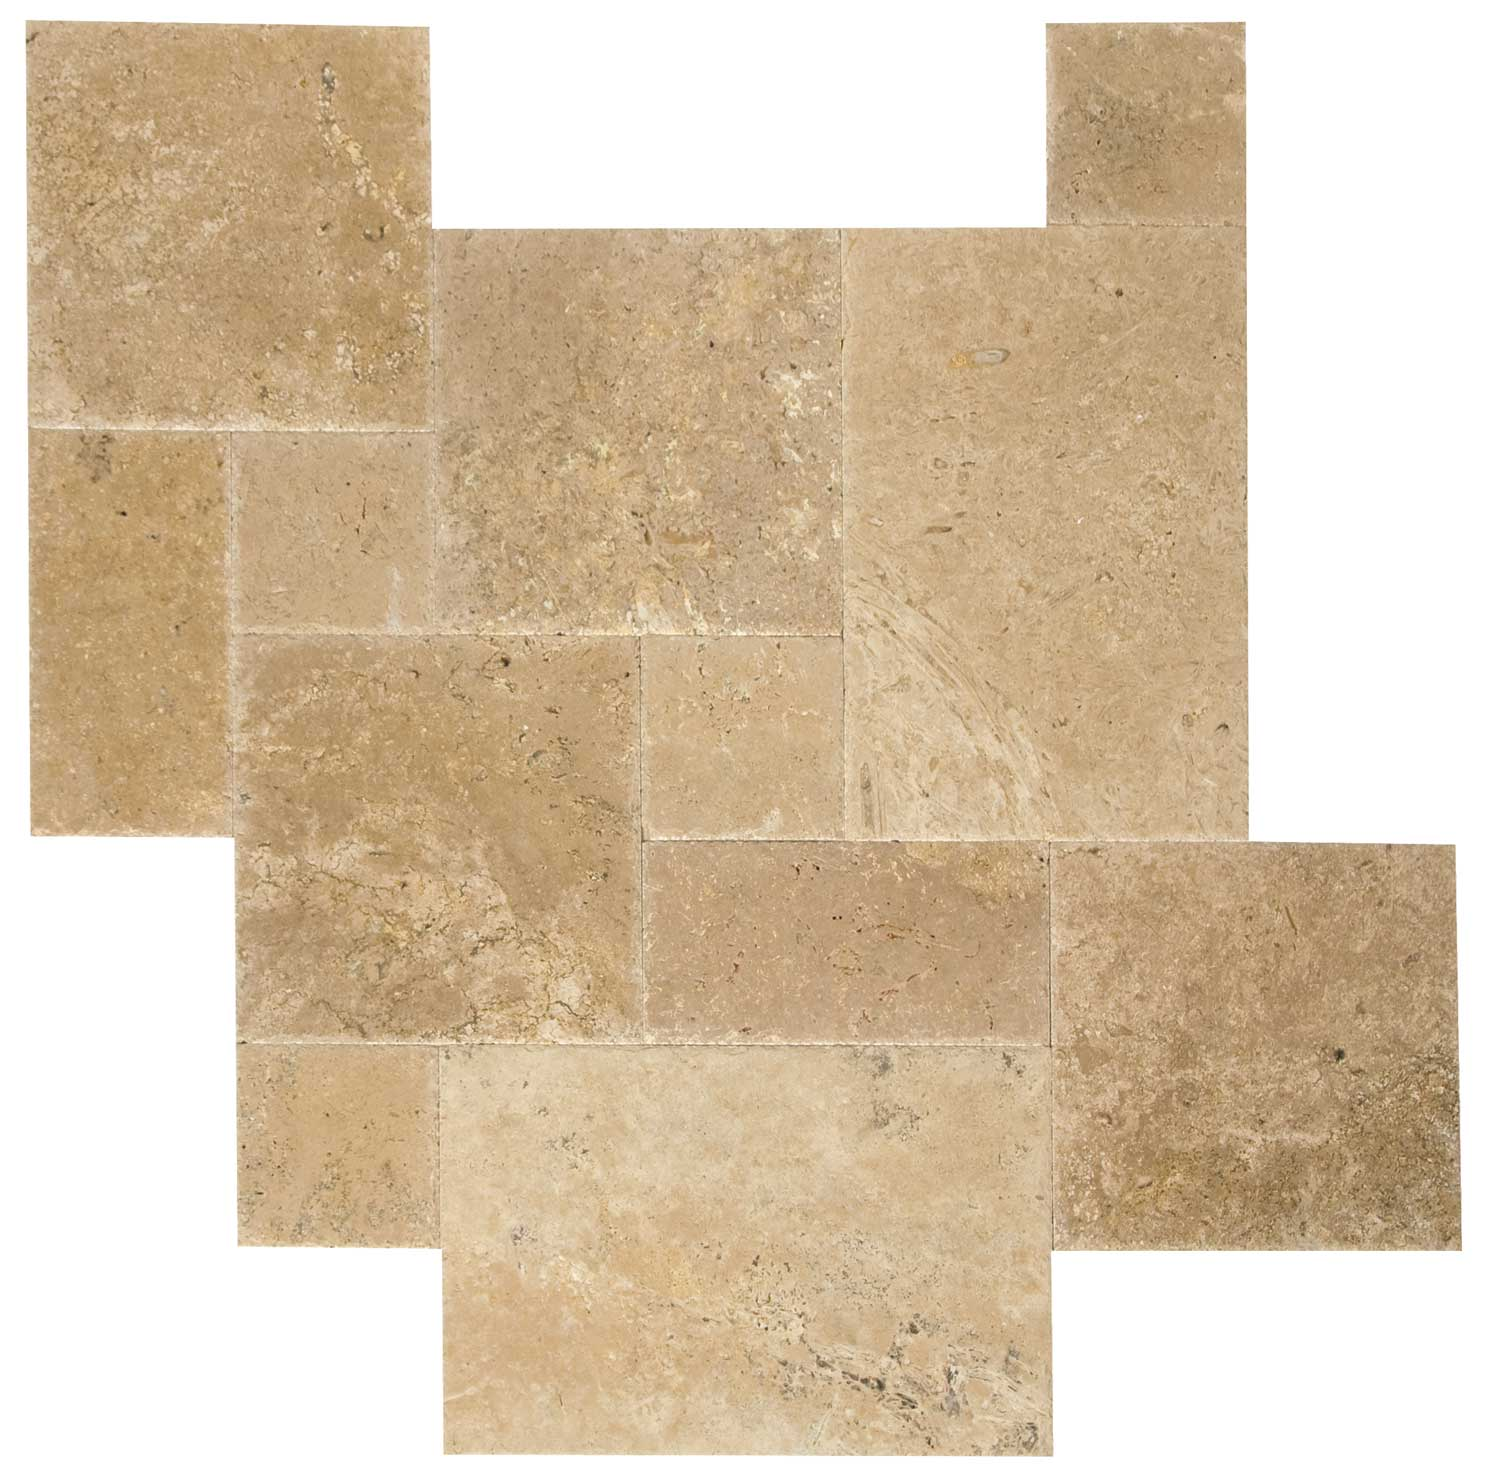 technology for should there of and a needs l to according quality both your lifetysle cons travertine floor pros guide you are care flooring adjust the